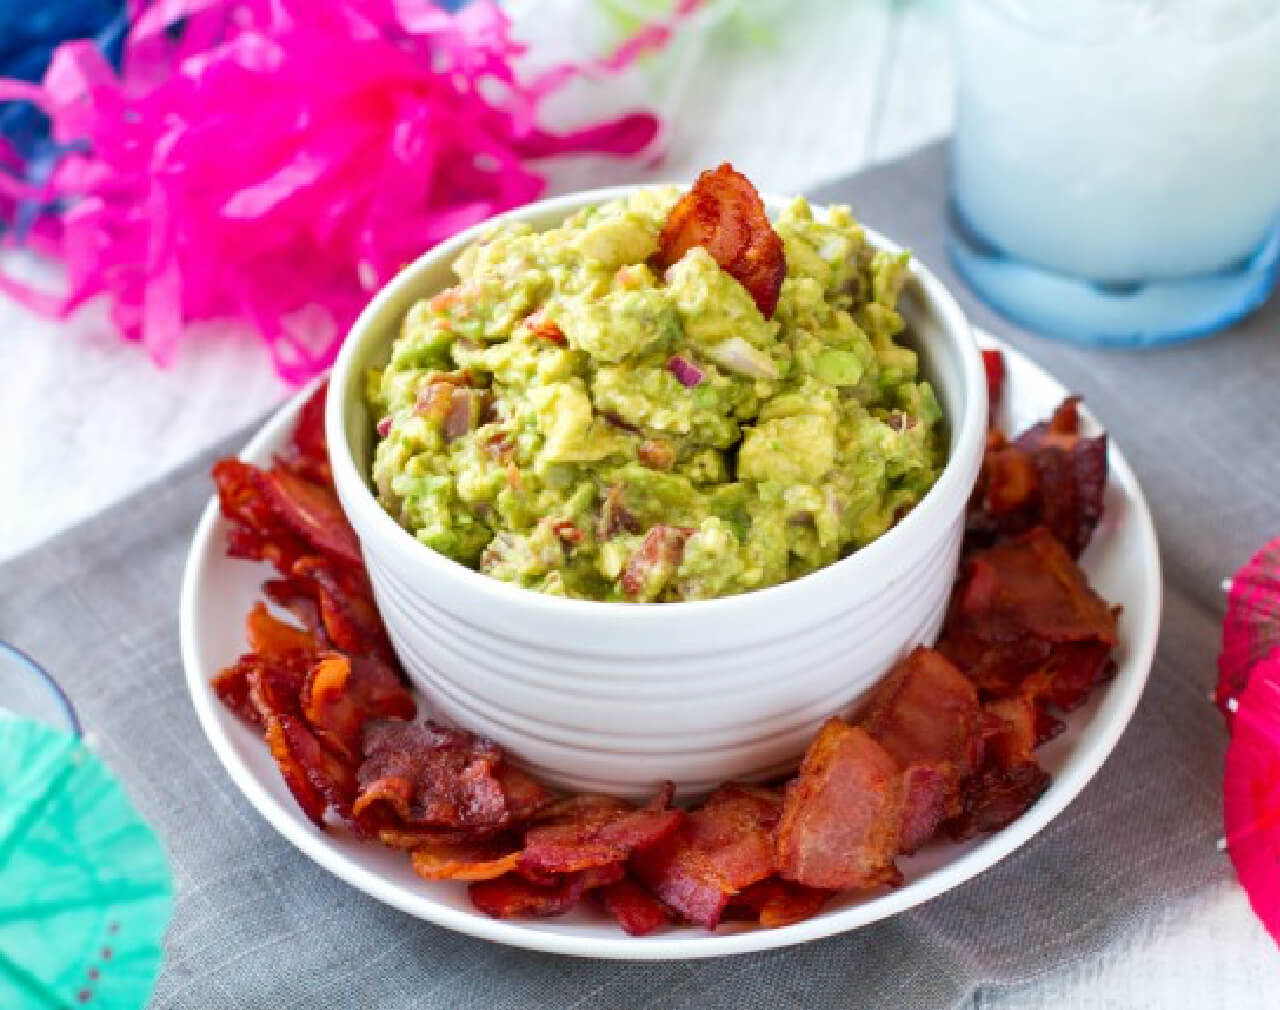 Bacon Chips and Homemade Guacamole